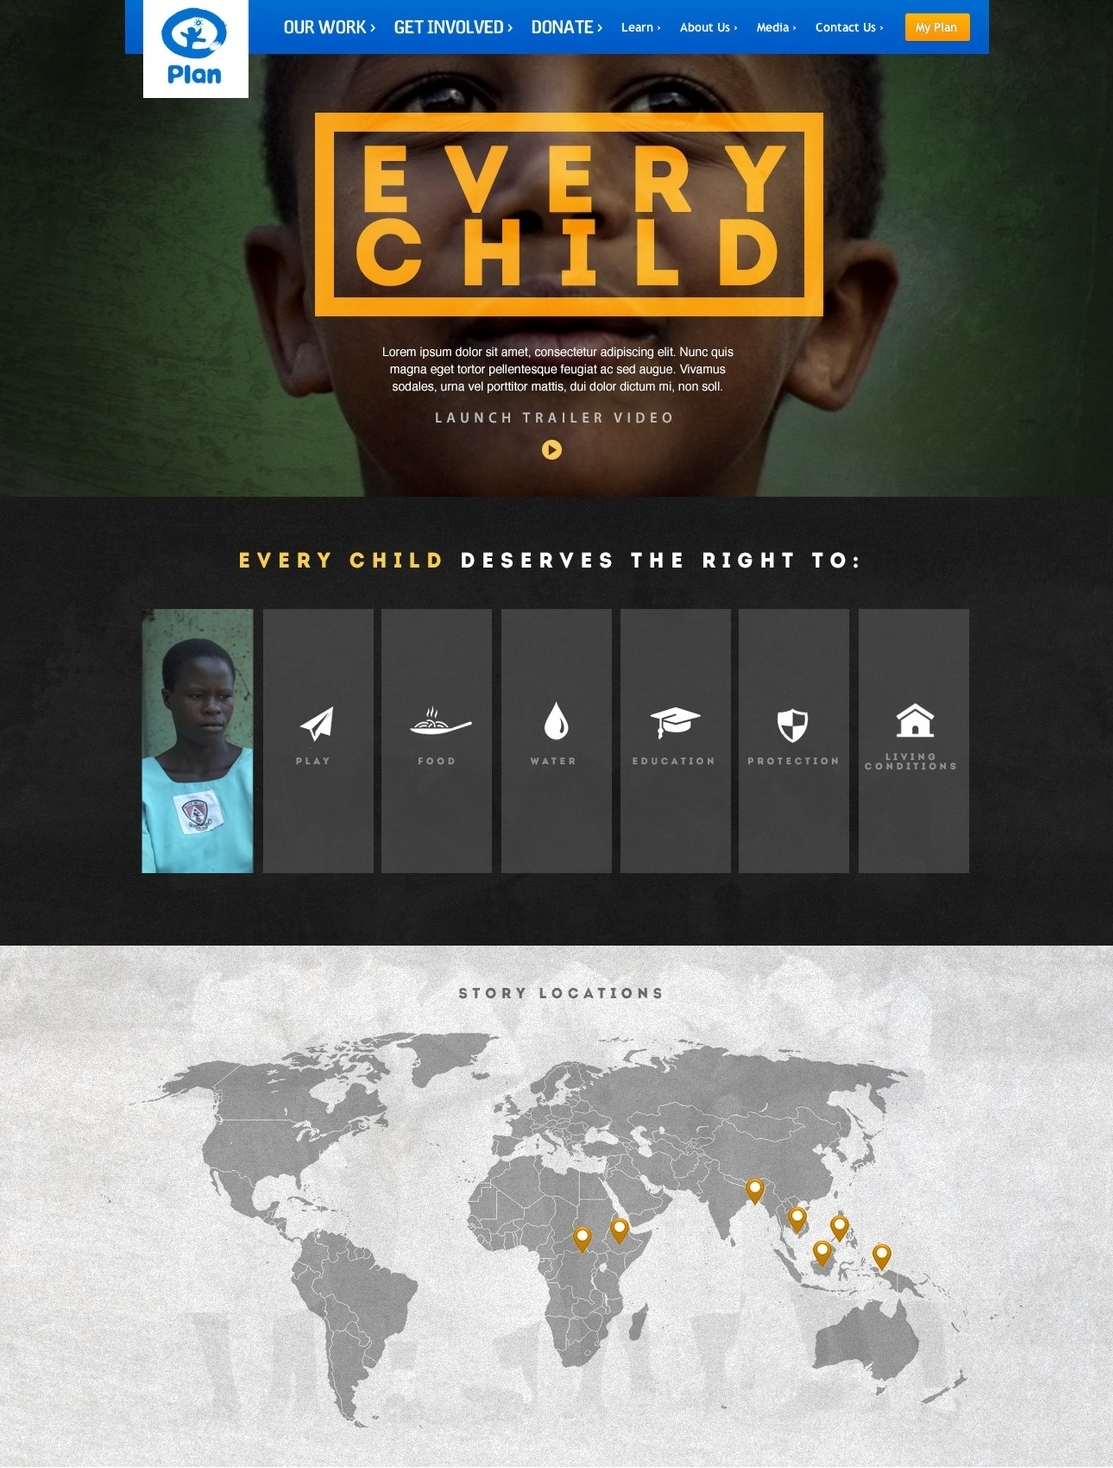 EveryChild_05_01_Overview.jpg